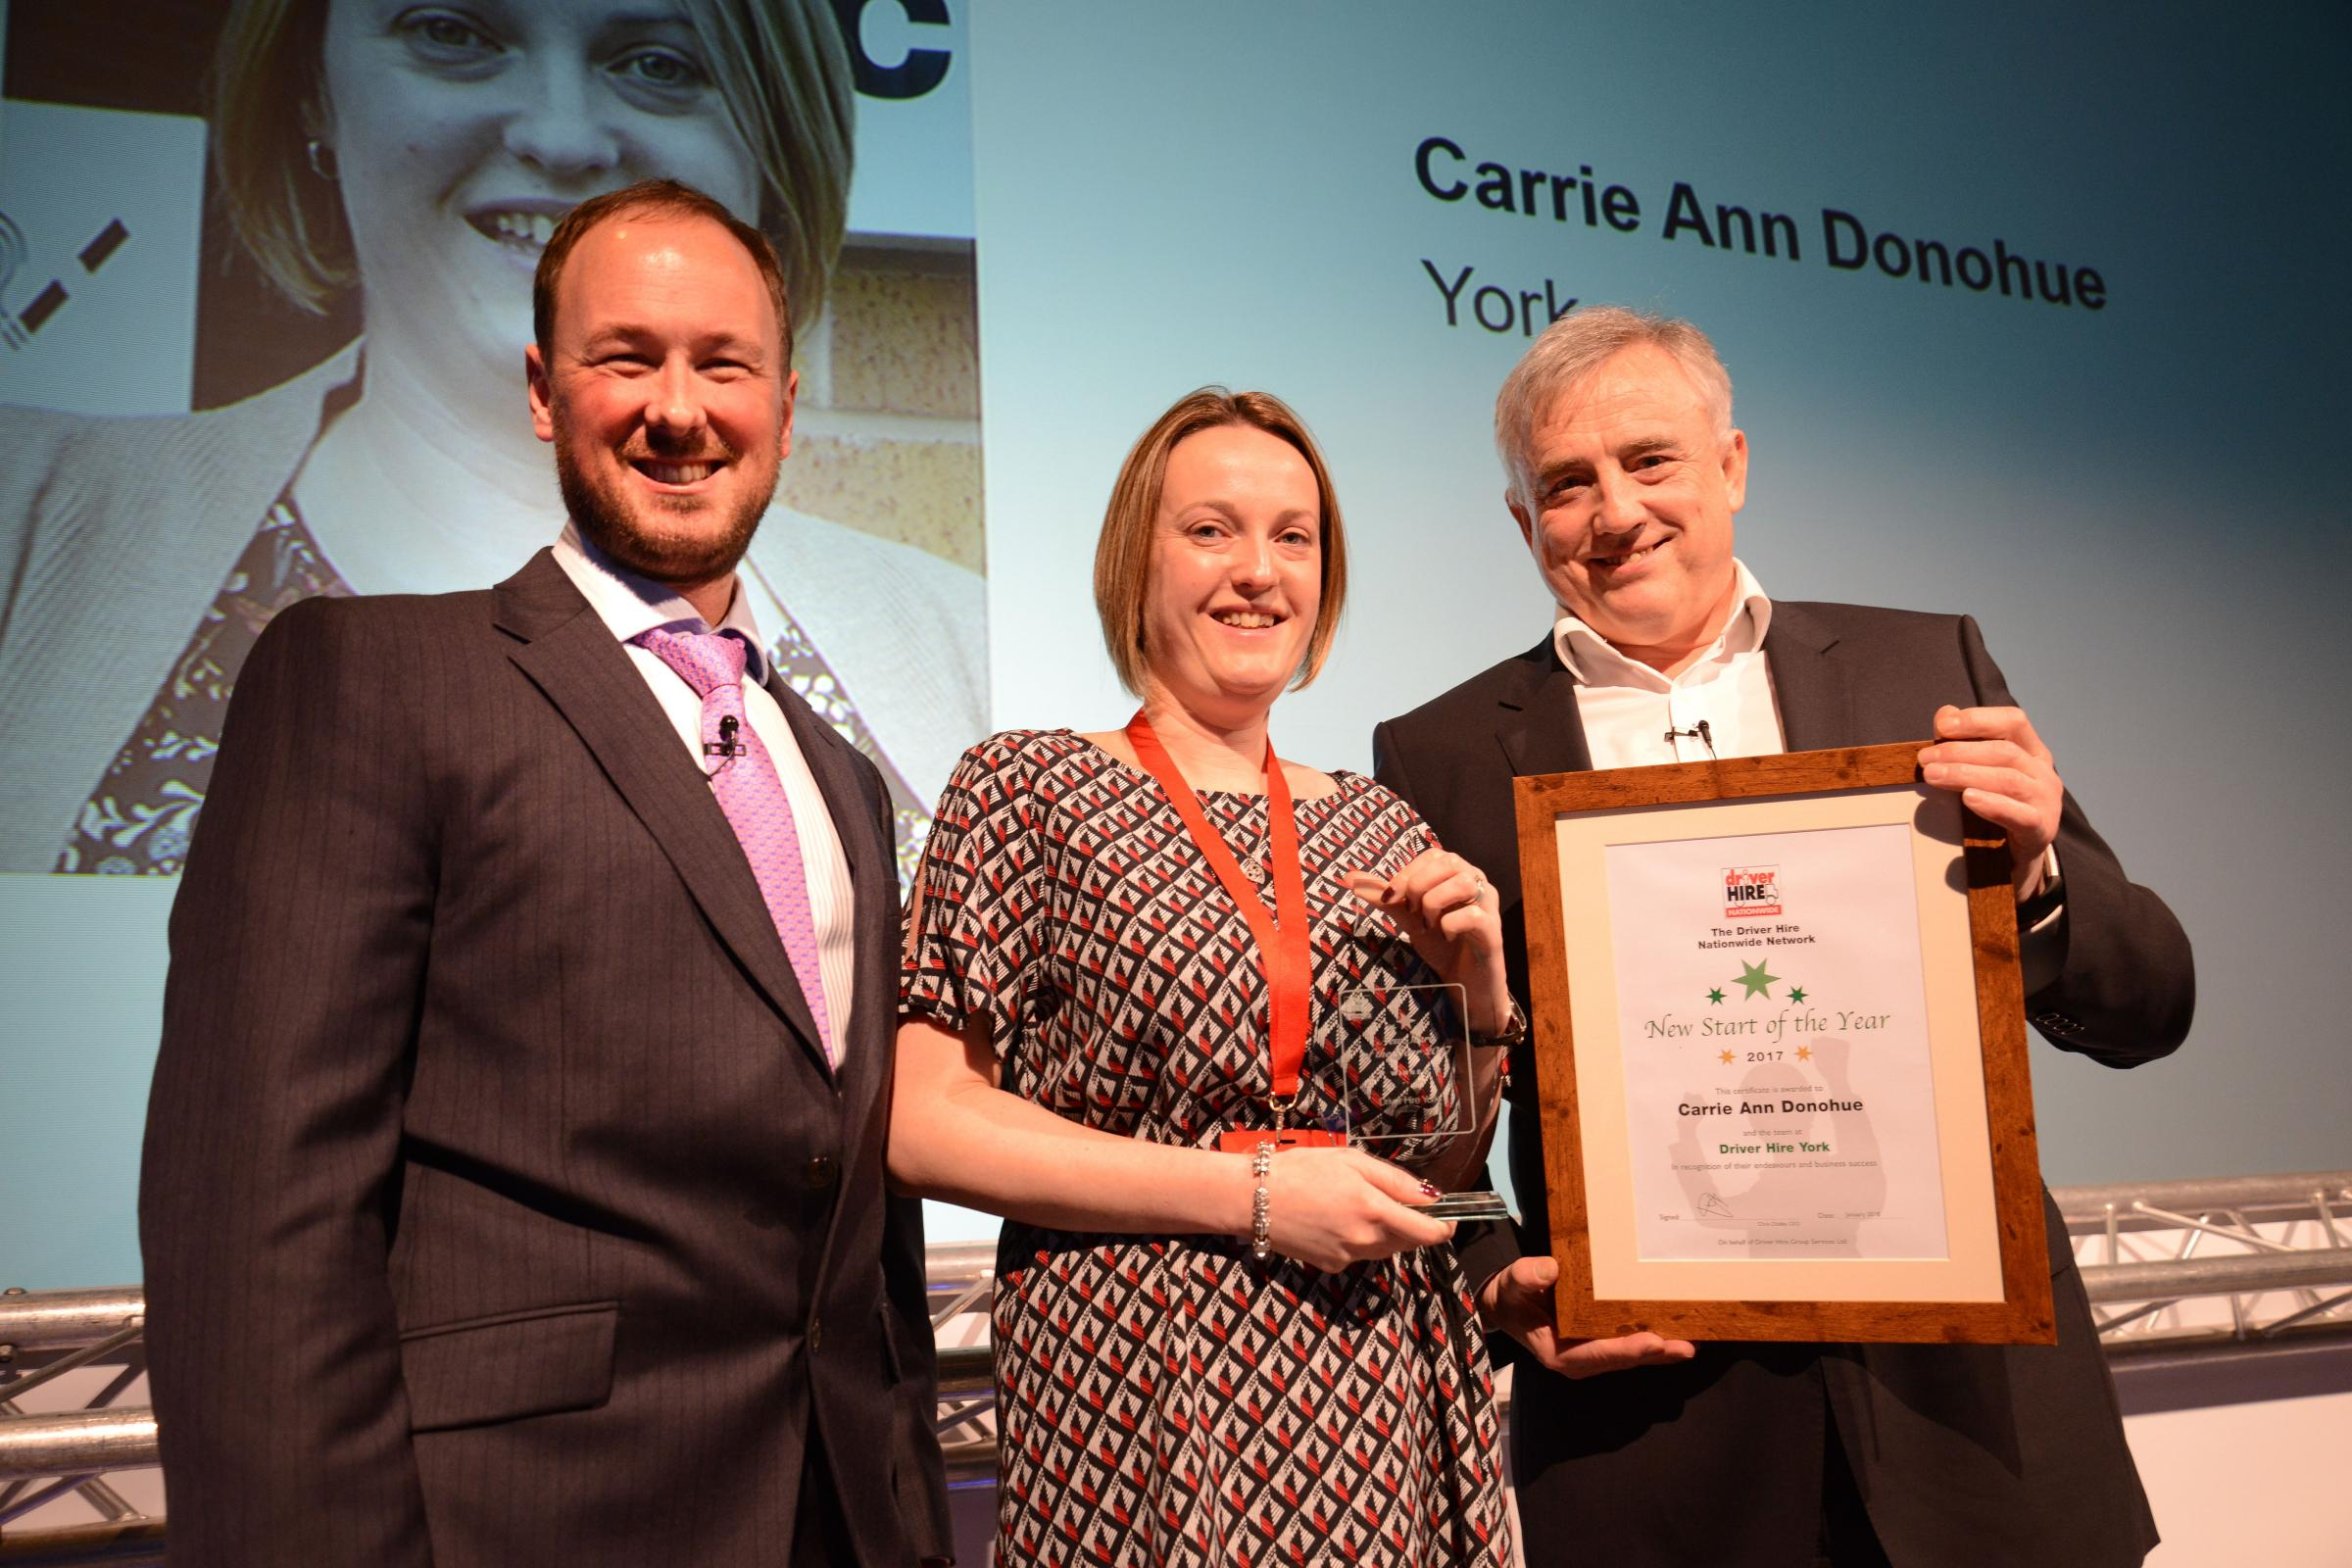 Carrie Ann Donohue collects her award from Jeremy Neale (Driver Hire Managing Director-UK), left and Chris Chidley (Driver Hire Chief Executive), right